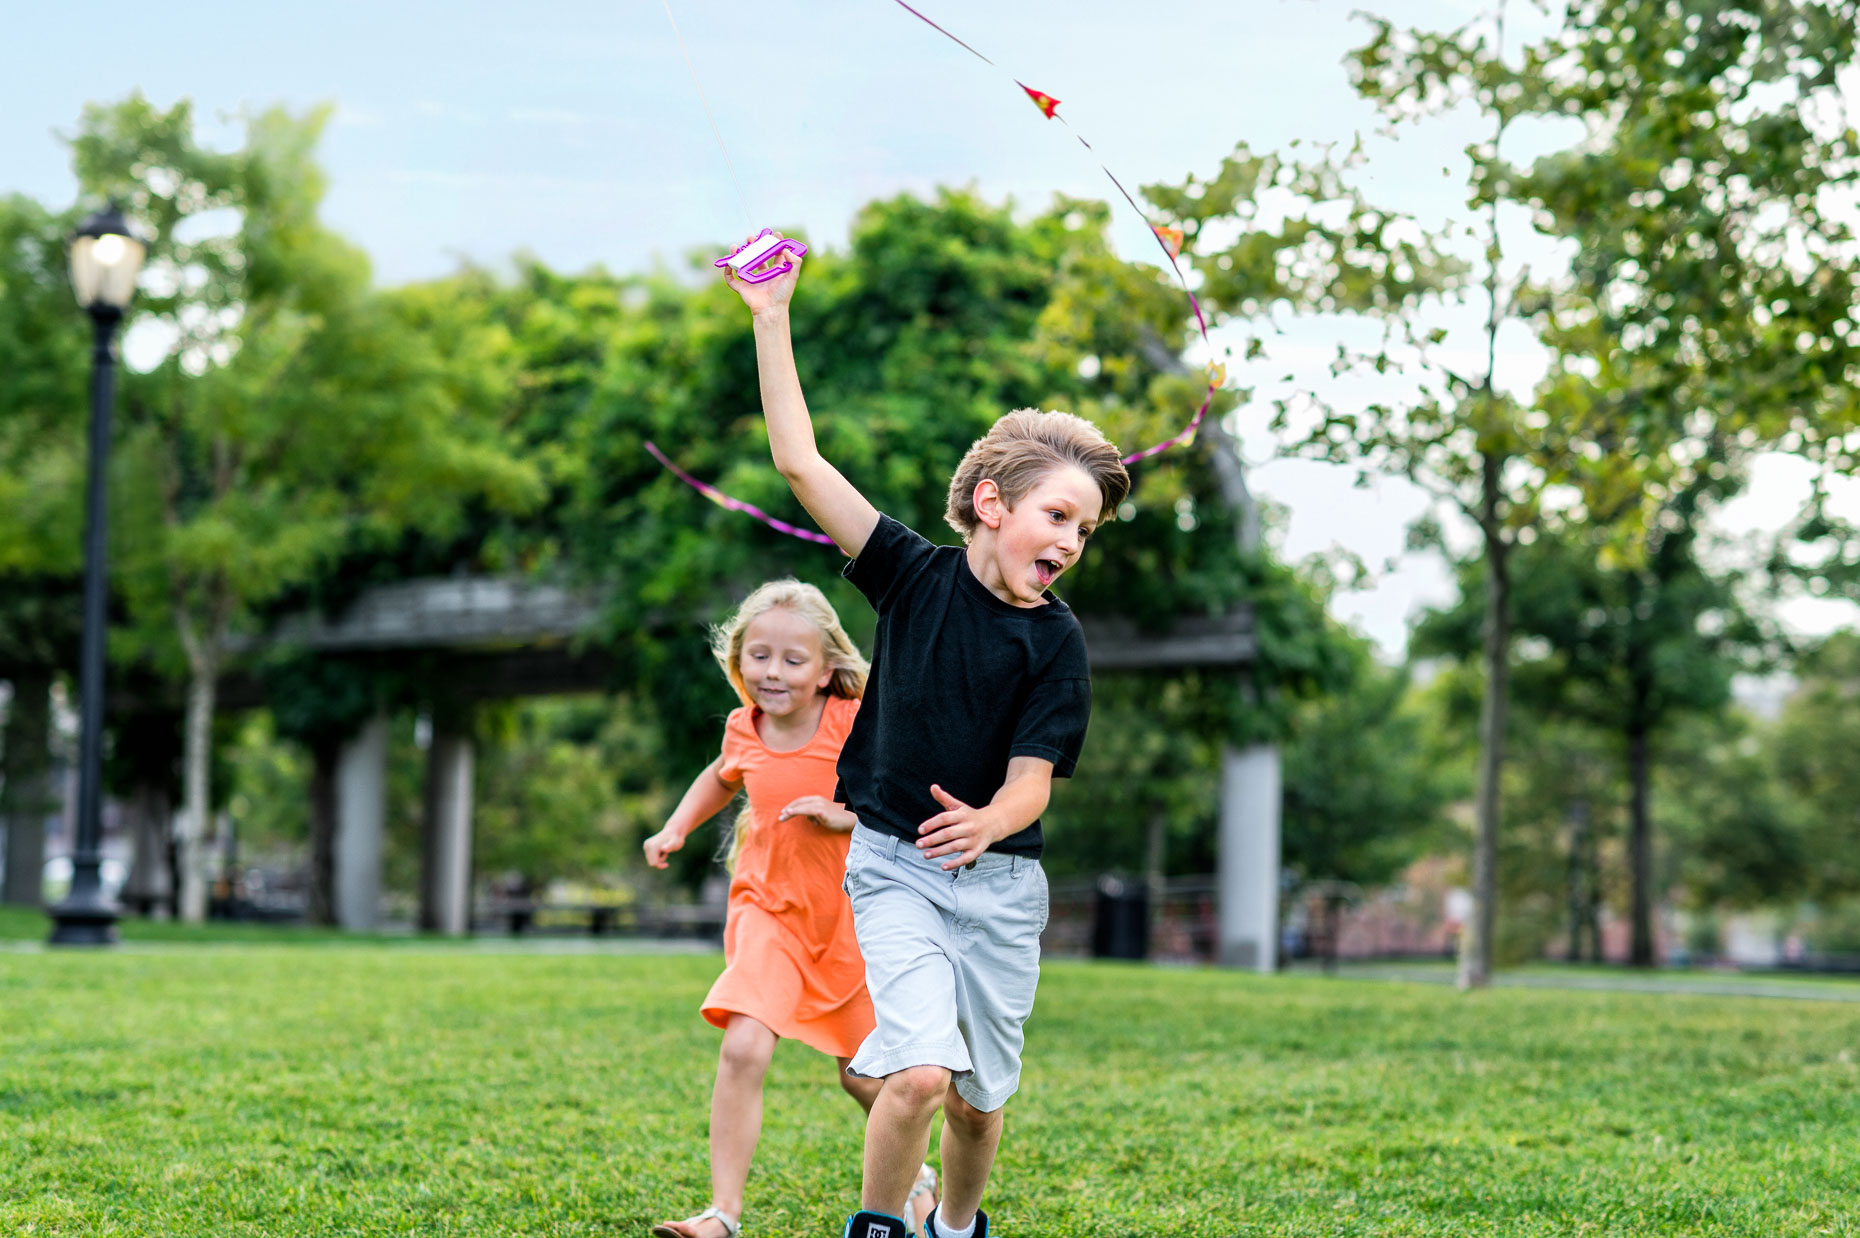 Brother and sister running in park while flying kite in Boston Massachusetts